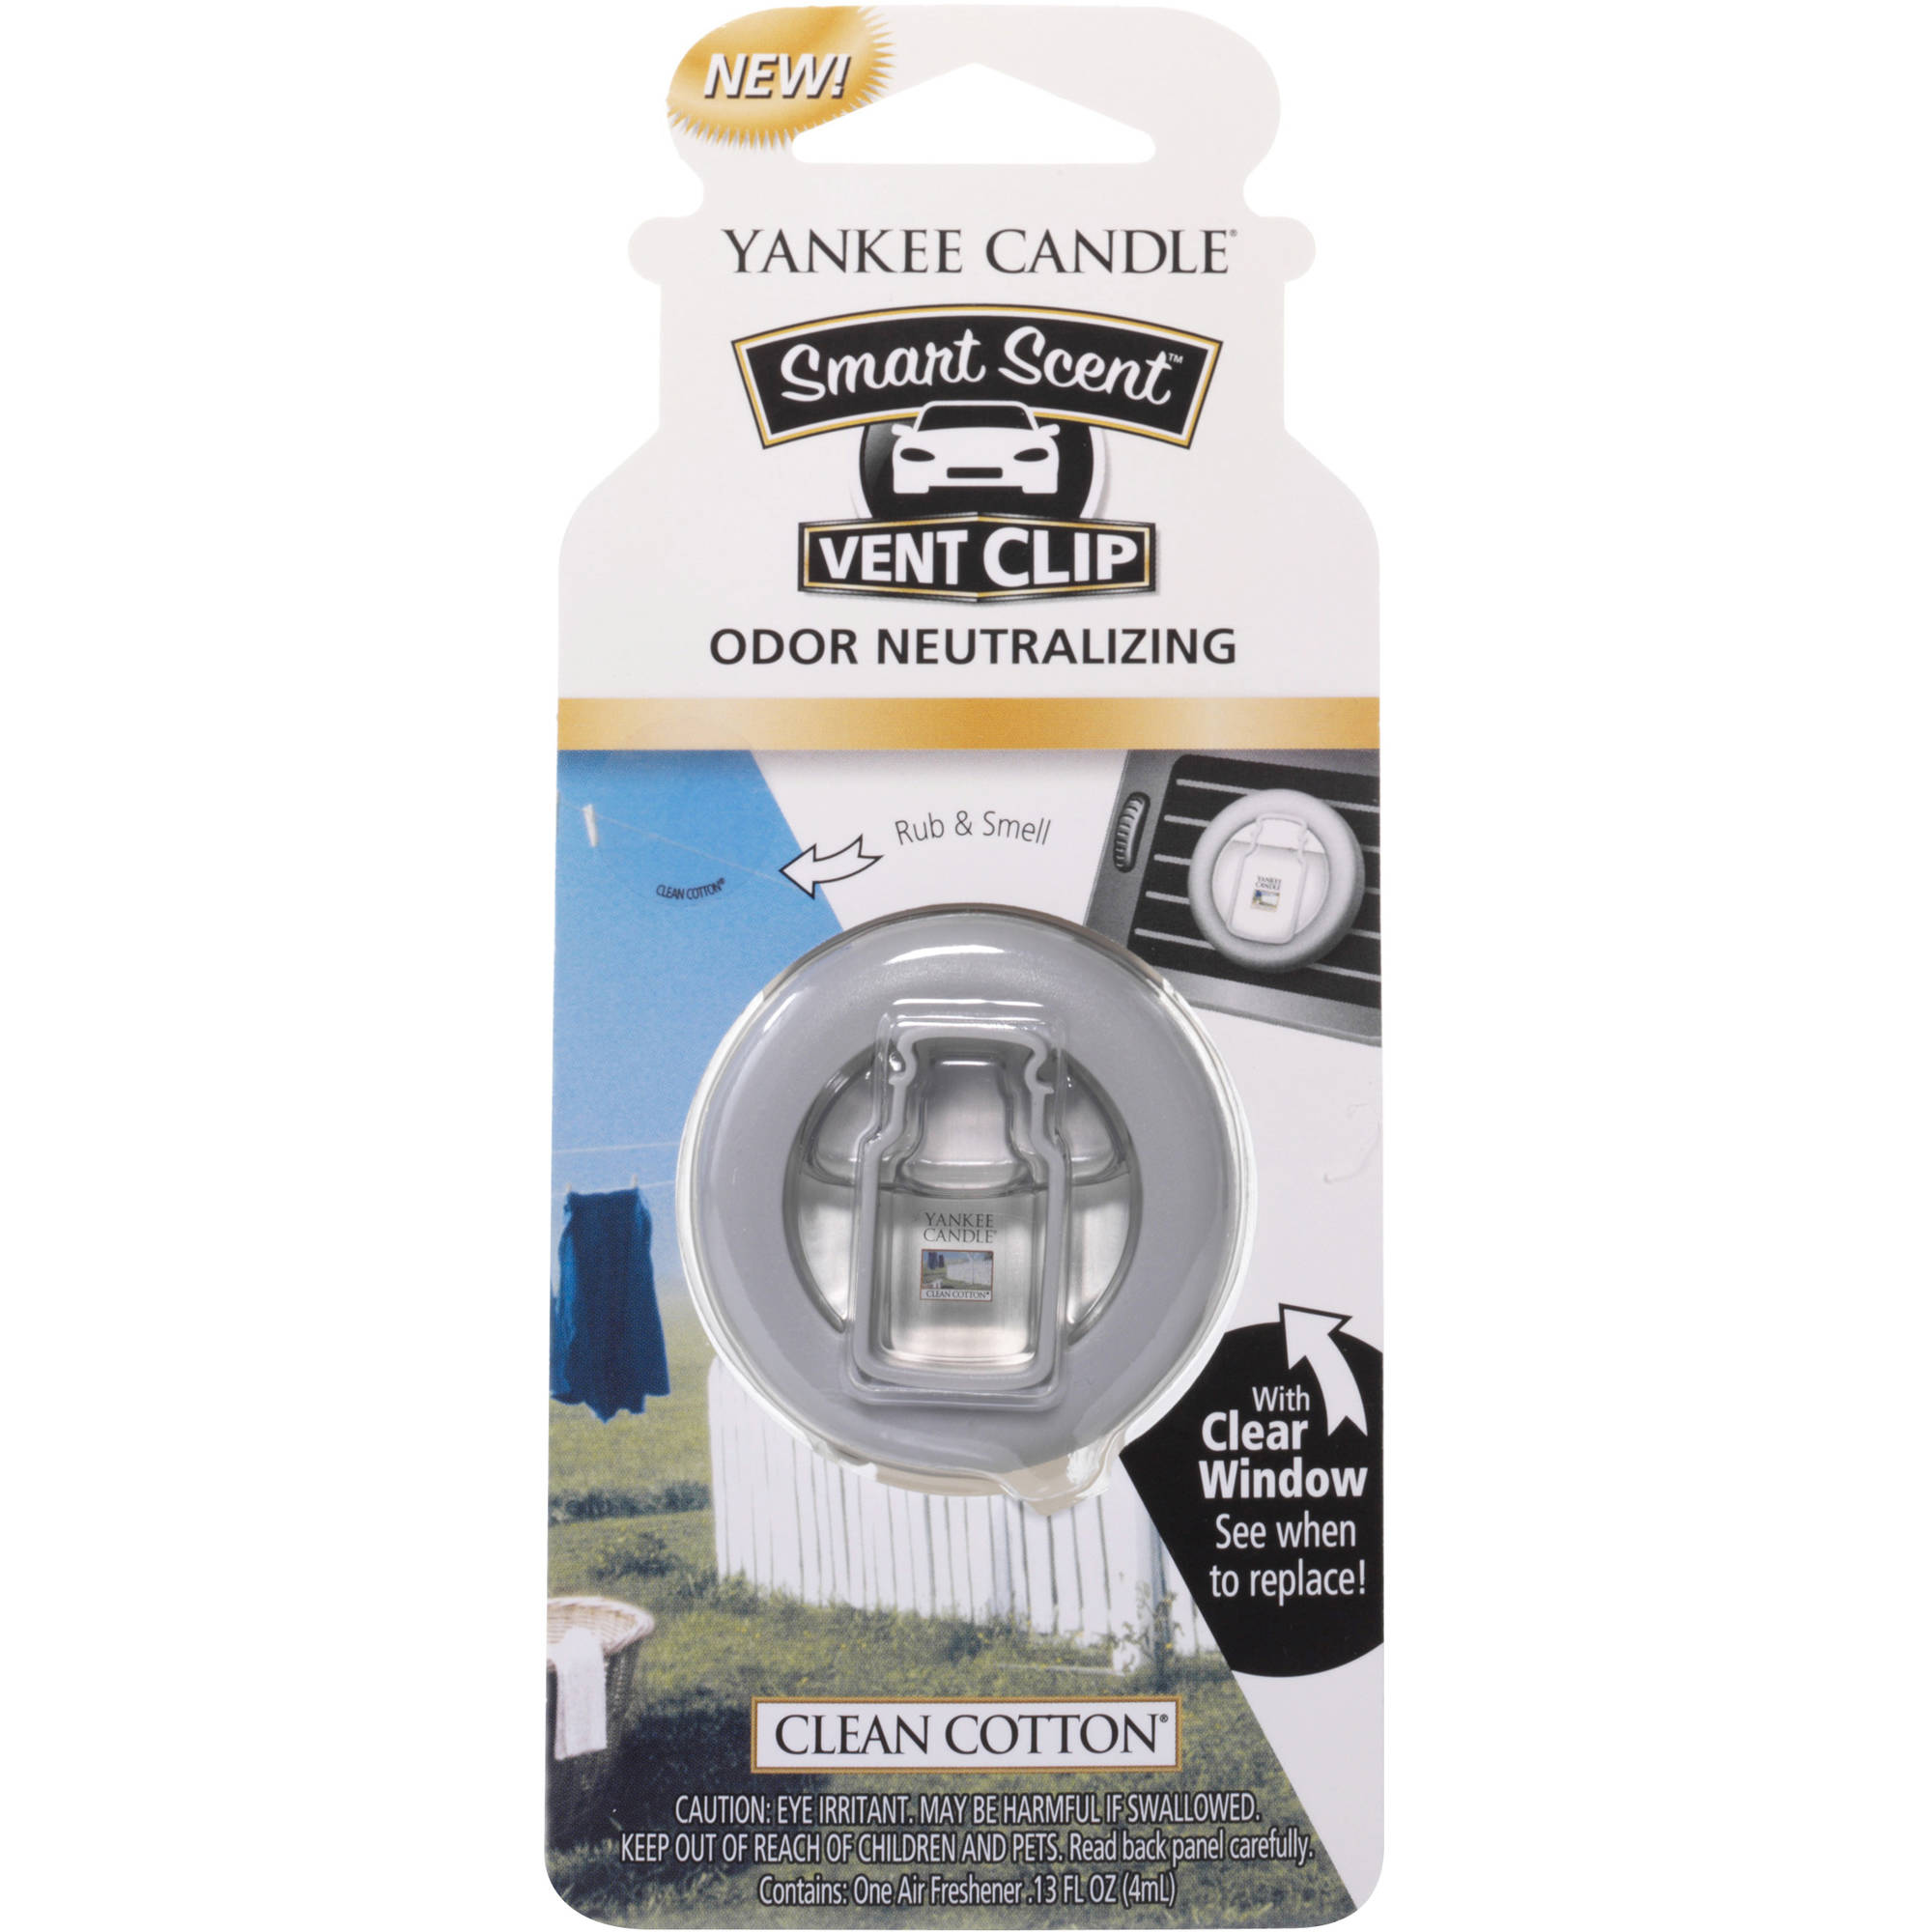 Yankee Candle Clean Cotton - 0.13 oz. Smart Scent Air Freshener Vent Clip